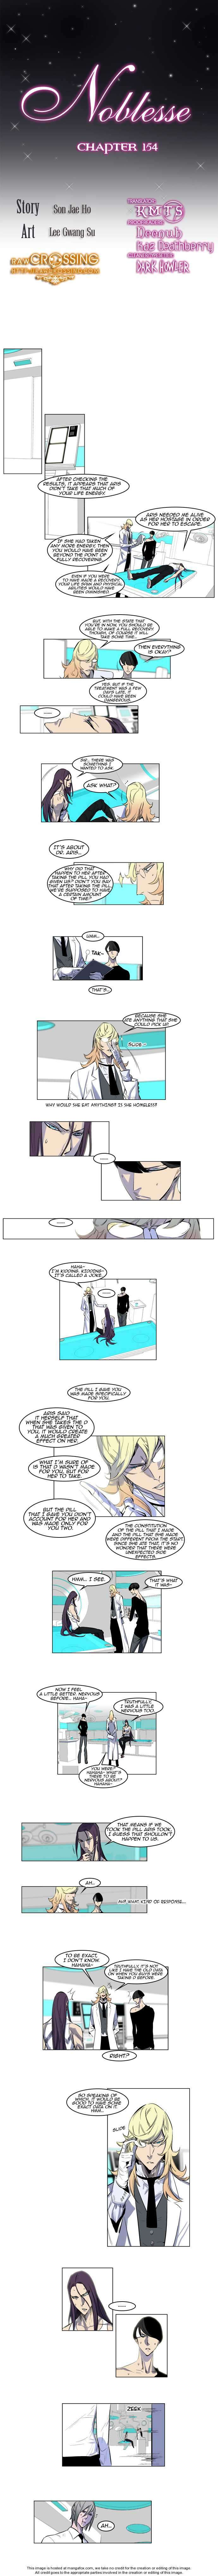 Noblesse 154 Page 1